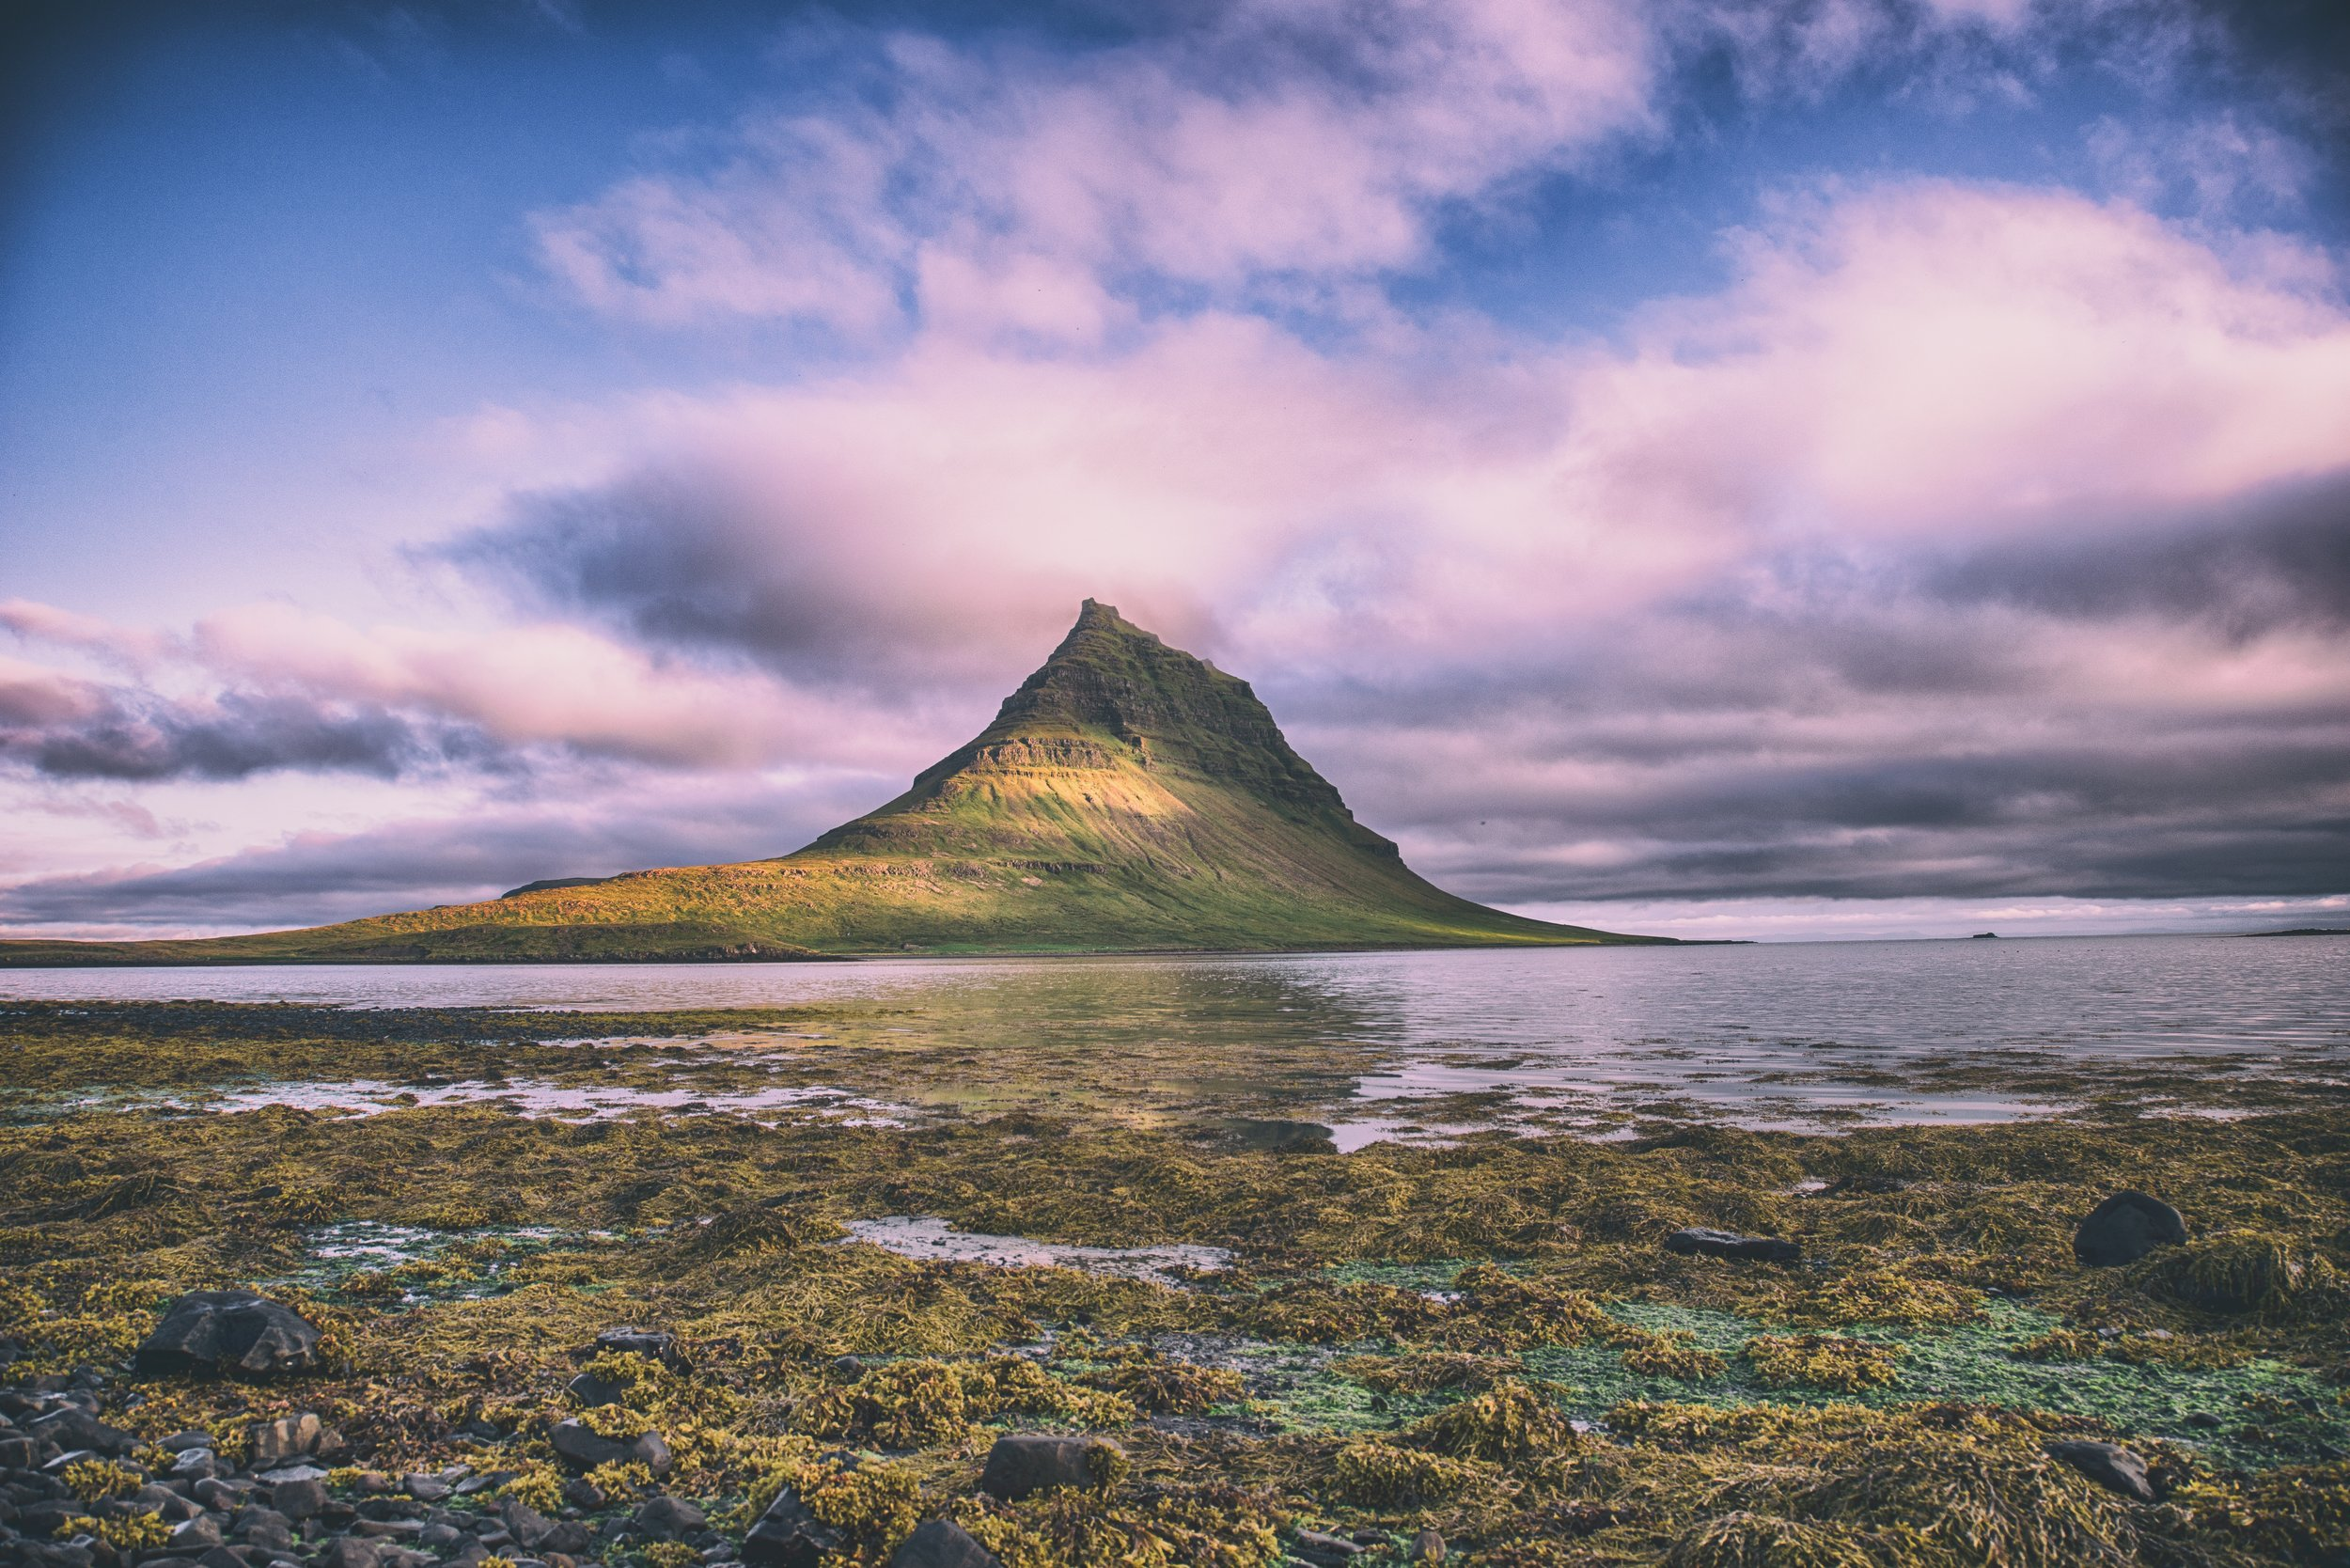 mountain on island with colorful sky